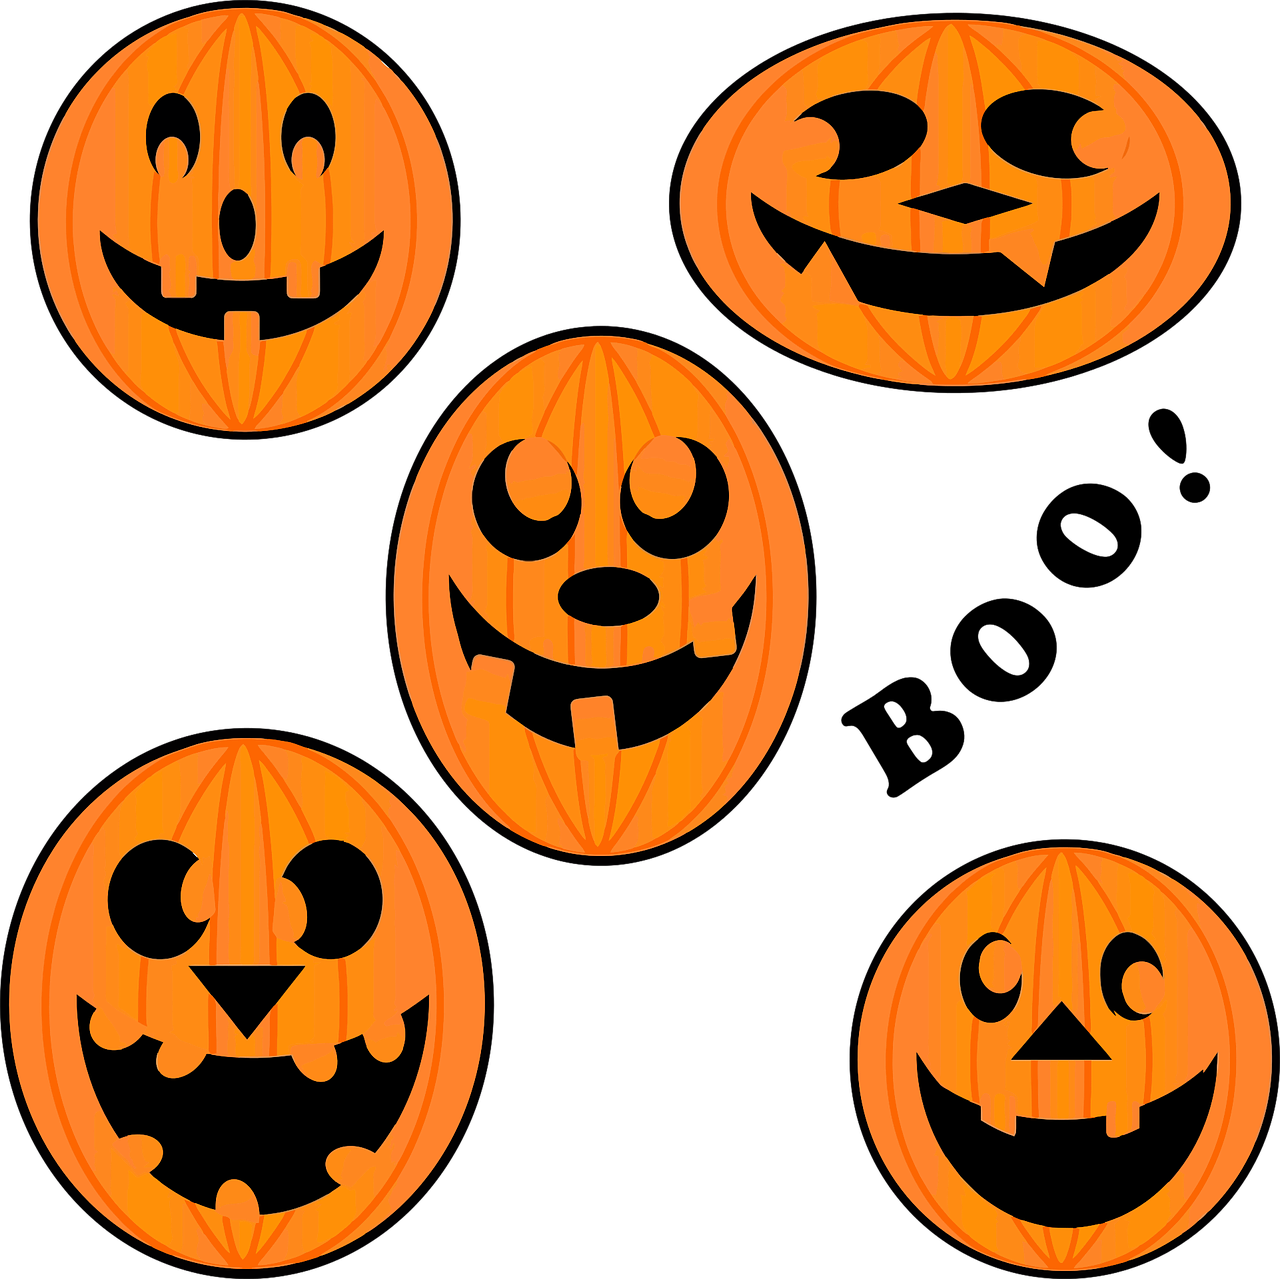 Pumpkins vector thanksgiving. Carved halloween scary free